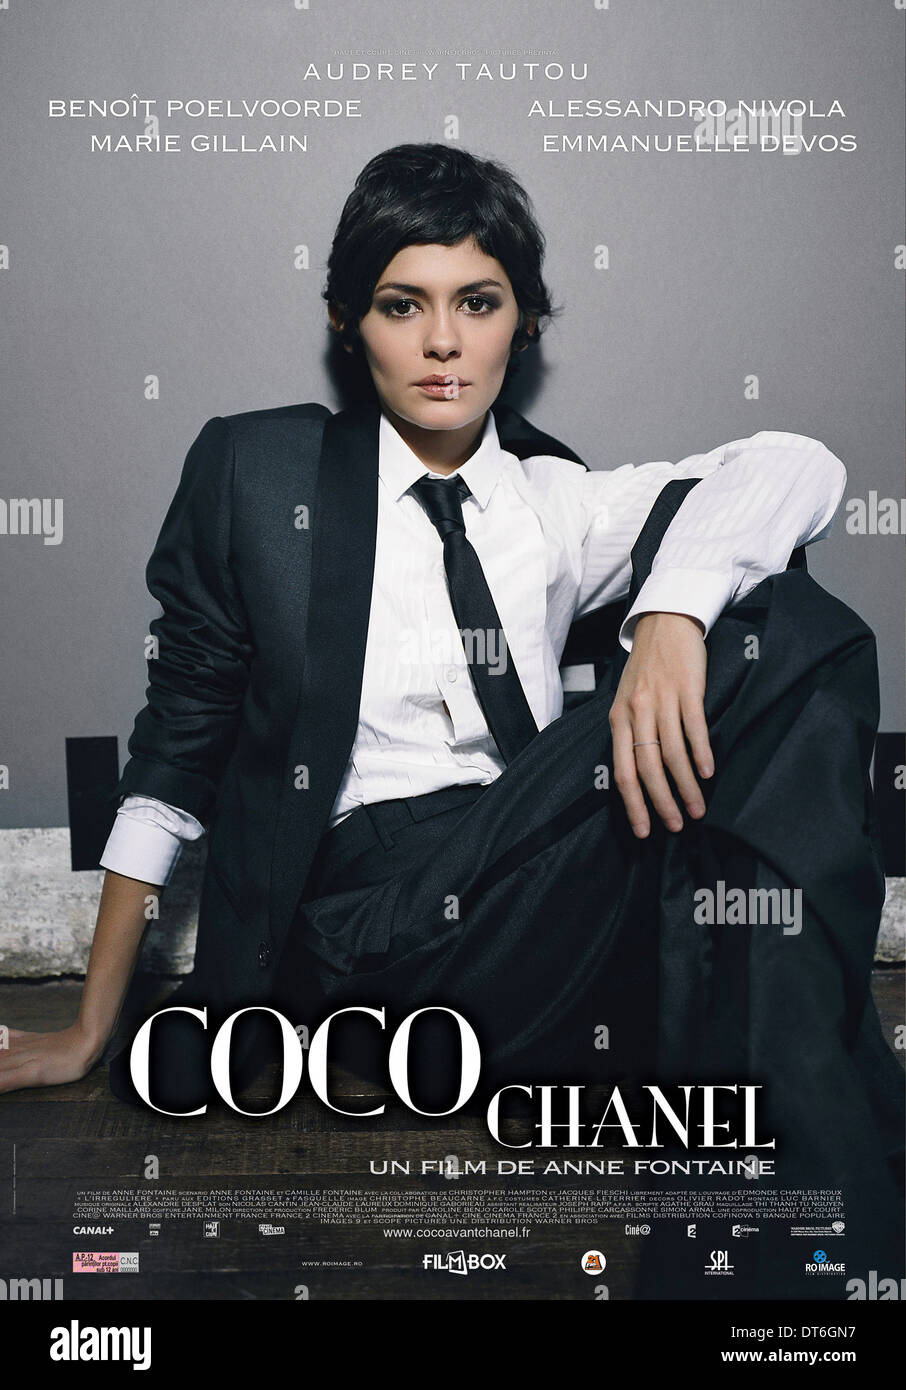 AUDREY TAUTOU POSTER COCO AVANT CHANEL; COCO BEFORE CHANEL (2009 ...